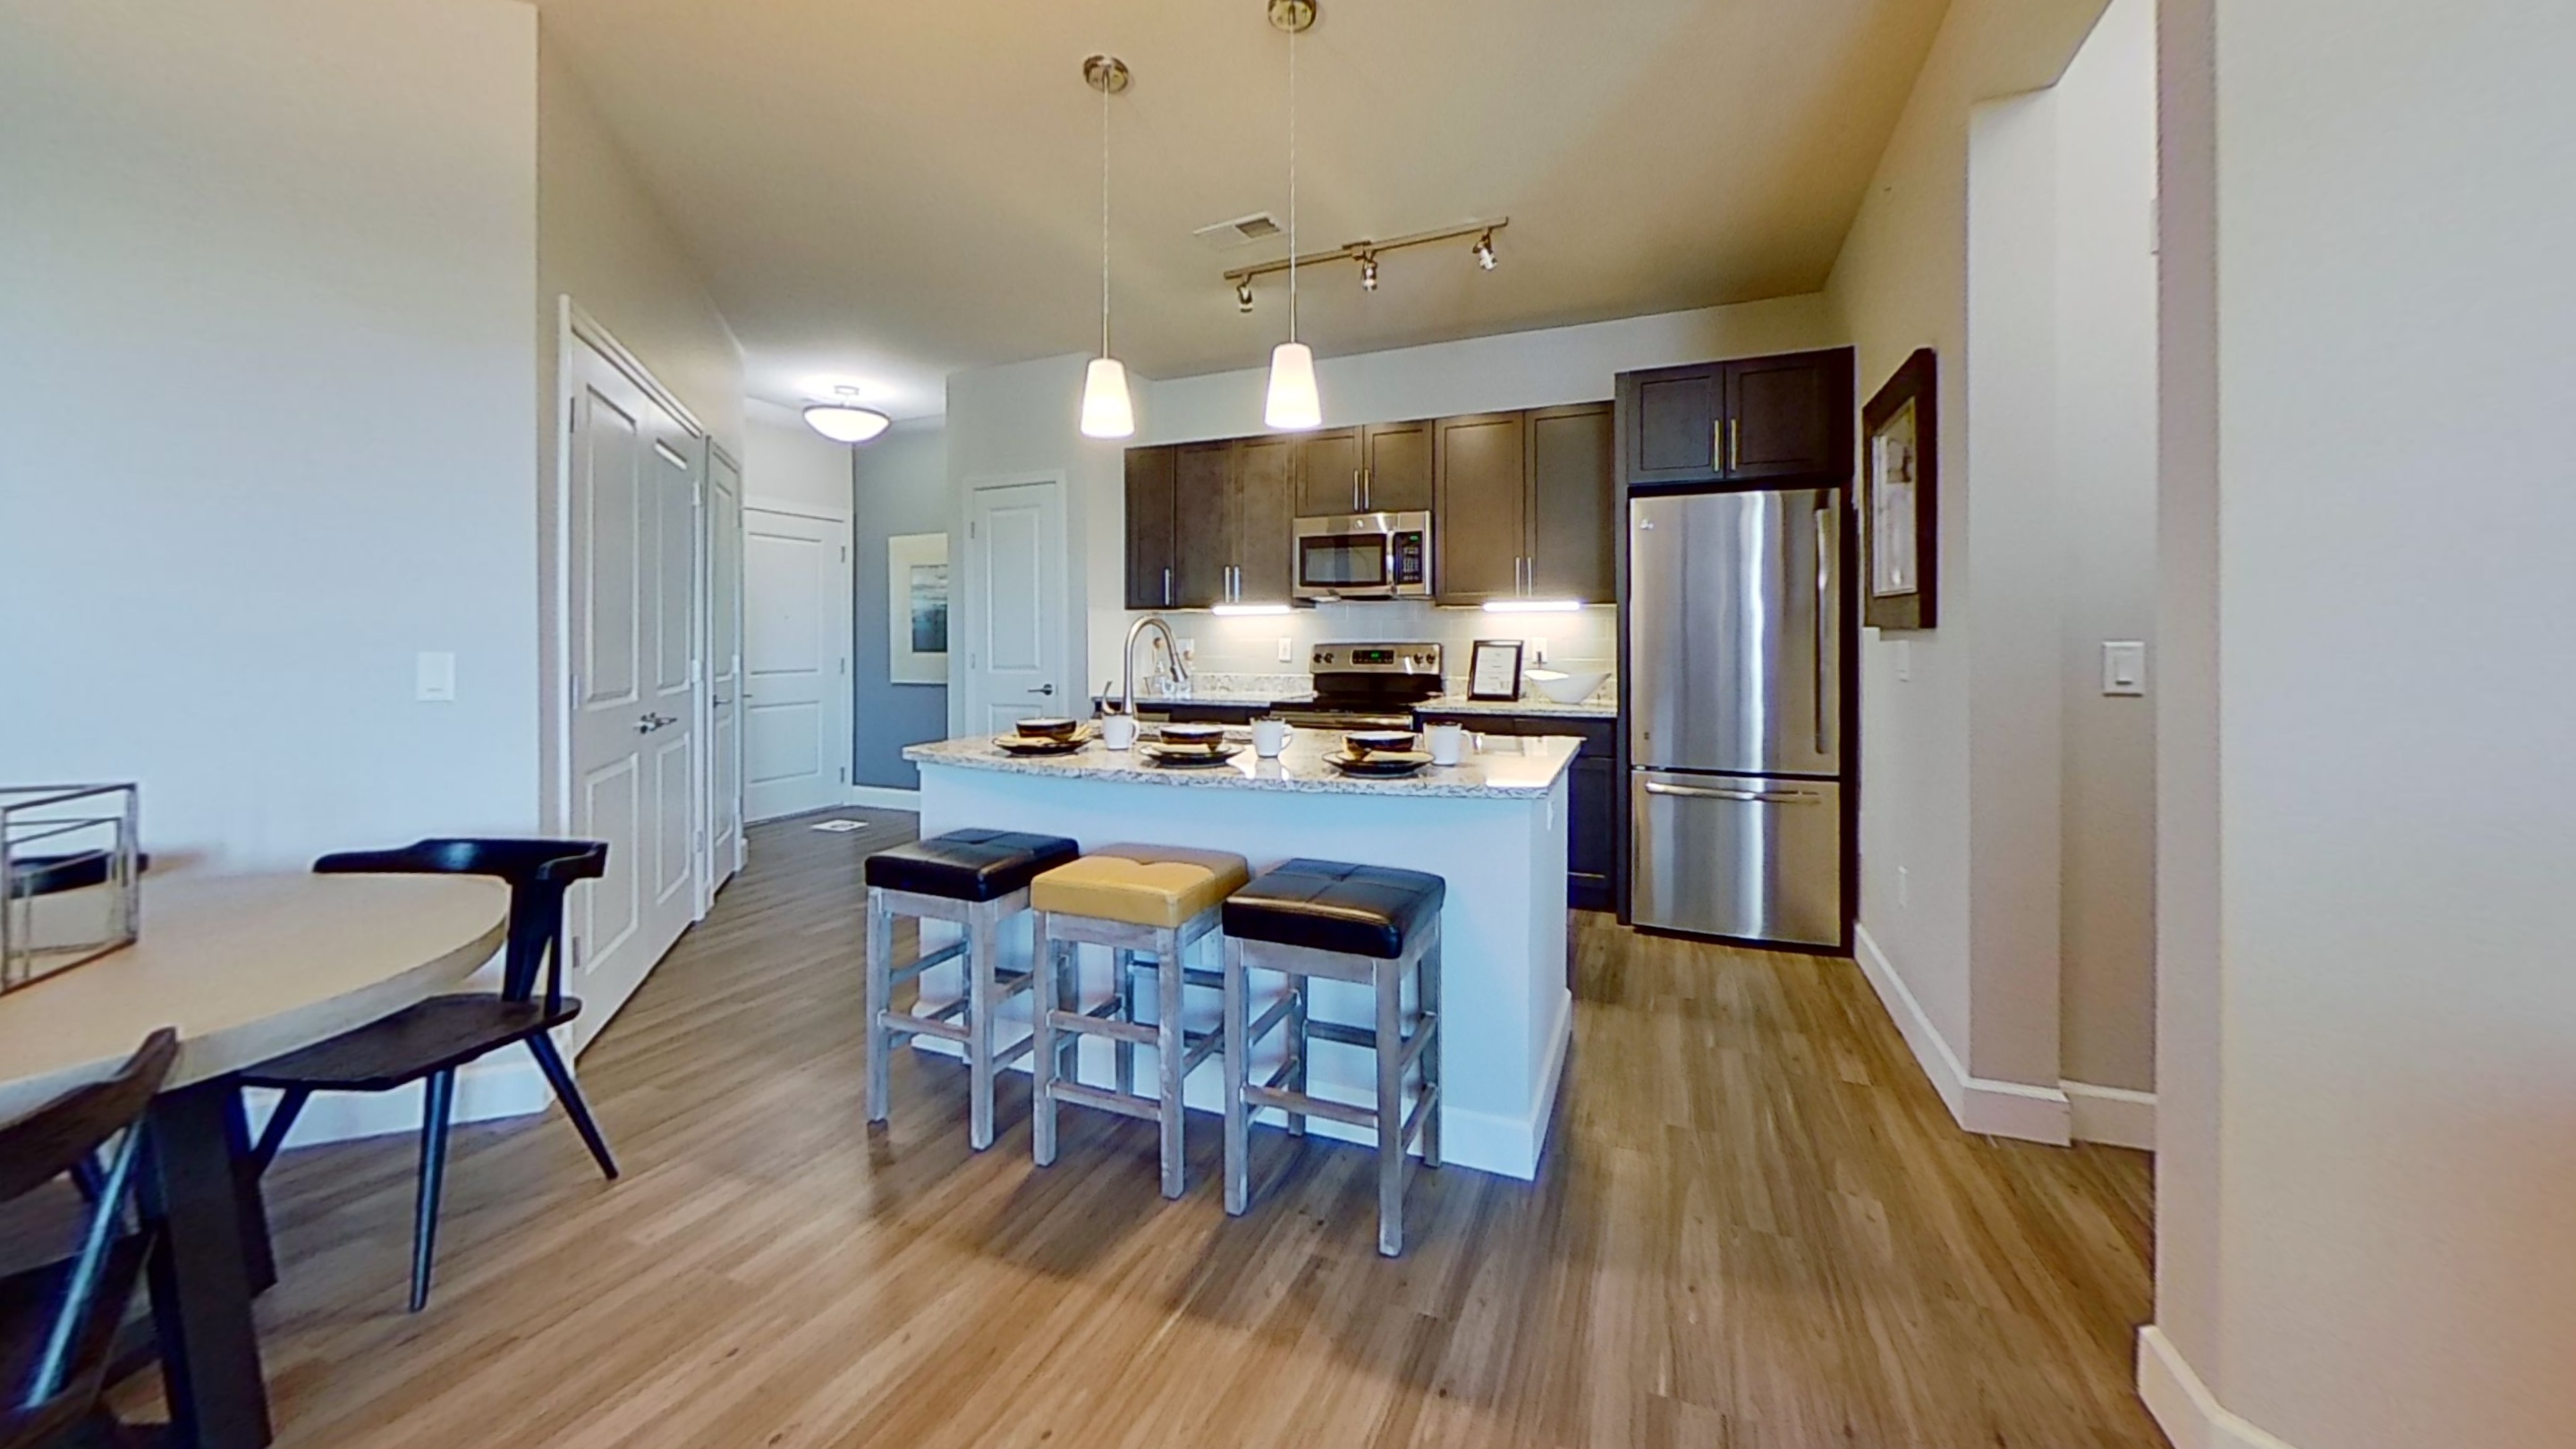 A3 Unit Kitchen and Dining Area at the Vue at Creve Coeur Apartments in Creve Coeur, MO